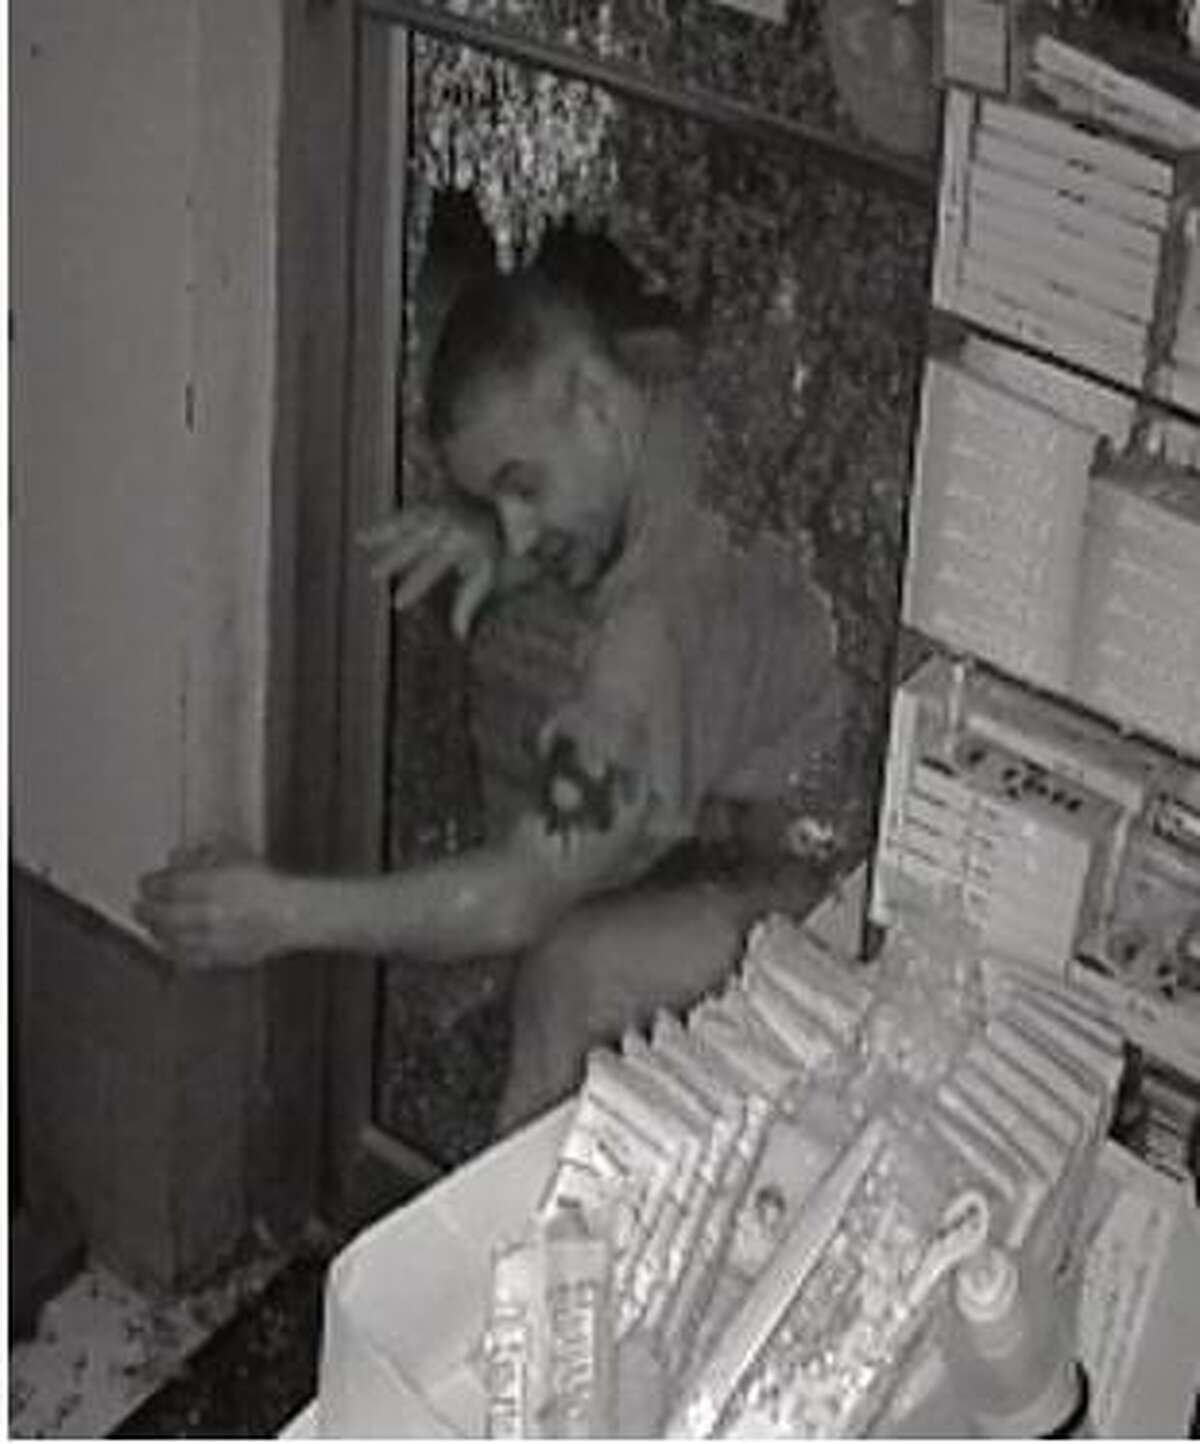 Police said this man broke into the East Main Market early on the morning of Sept. 24.